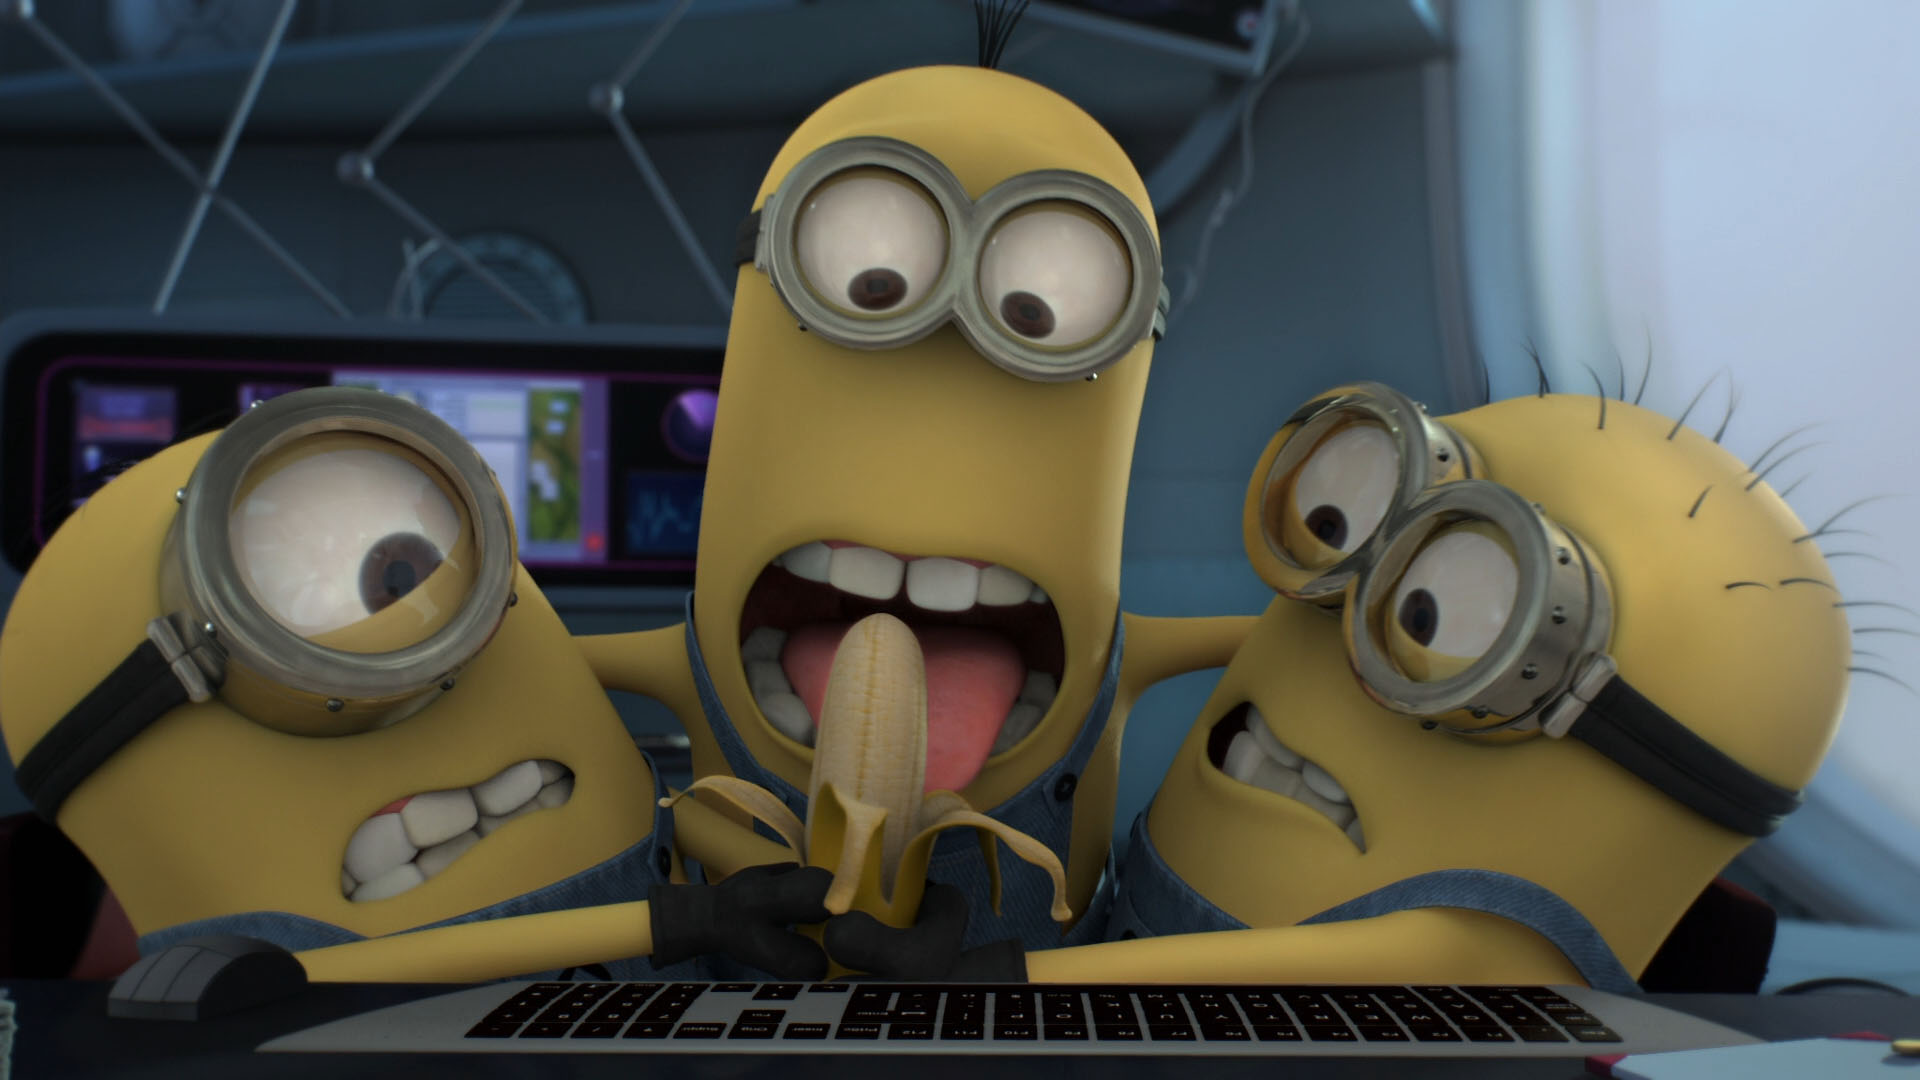 despicable me 2 new hd wallpapers - all hd wallpapers